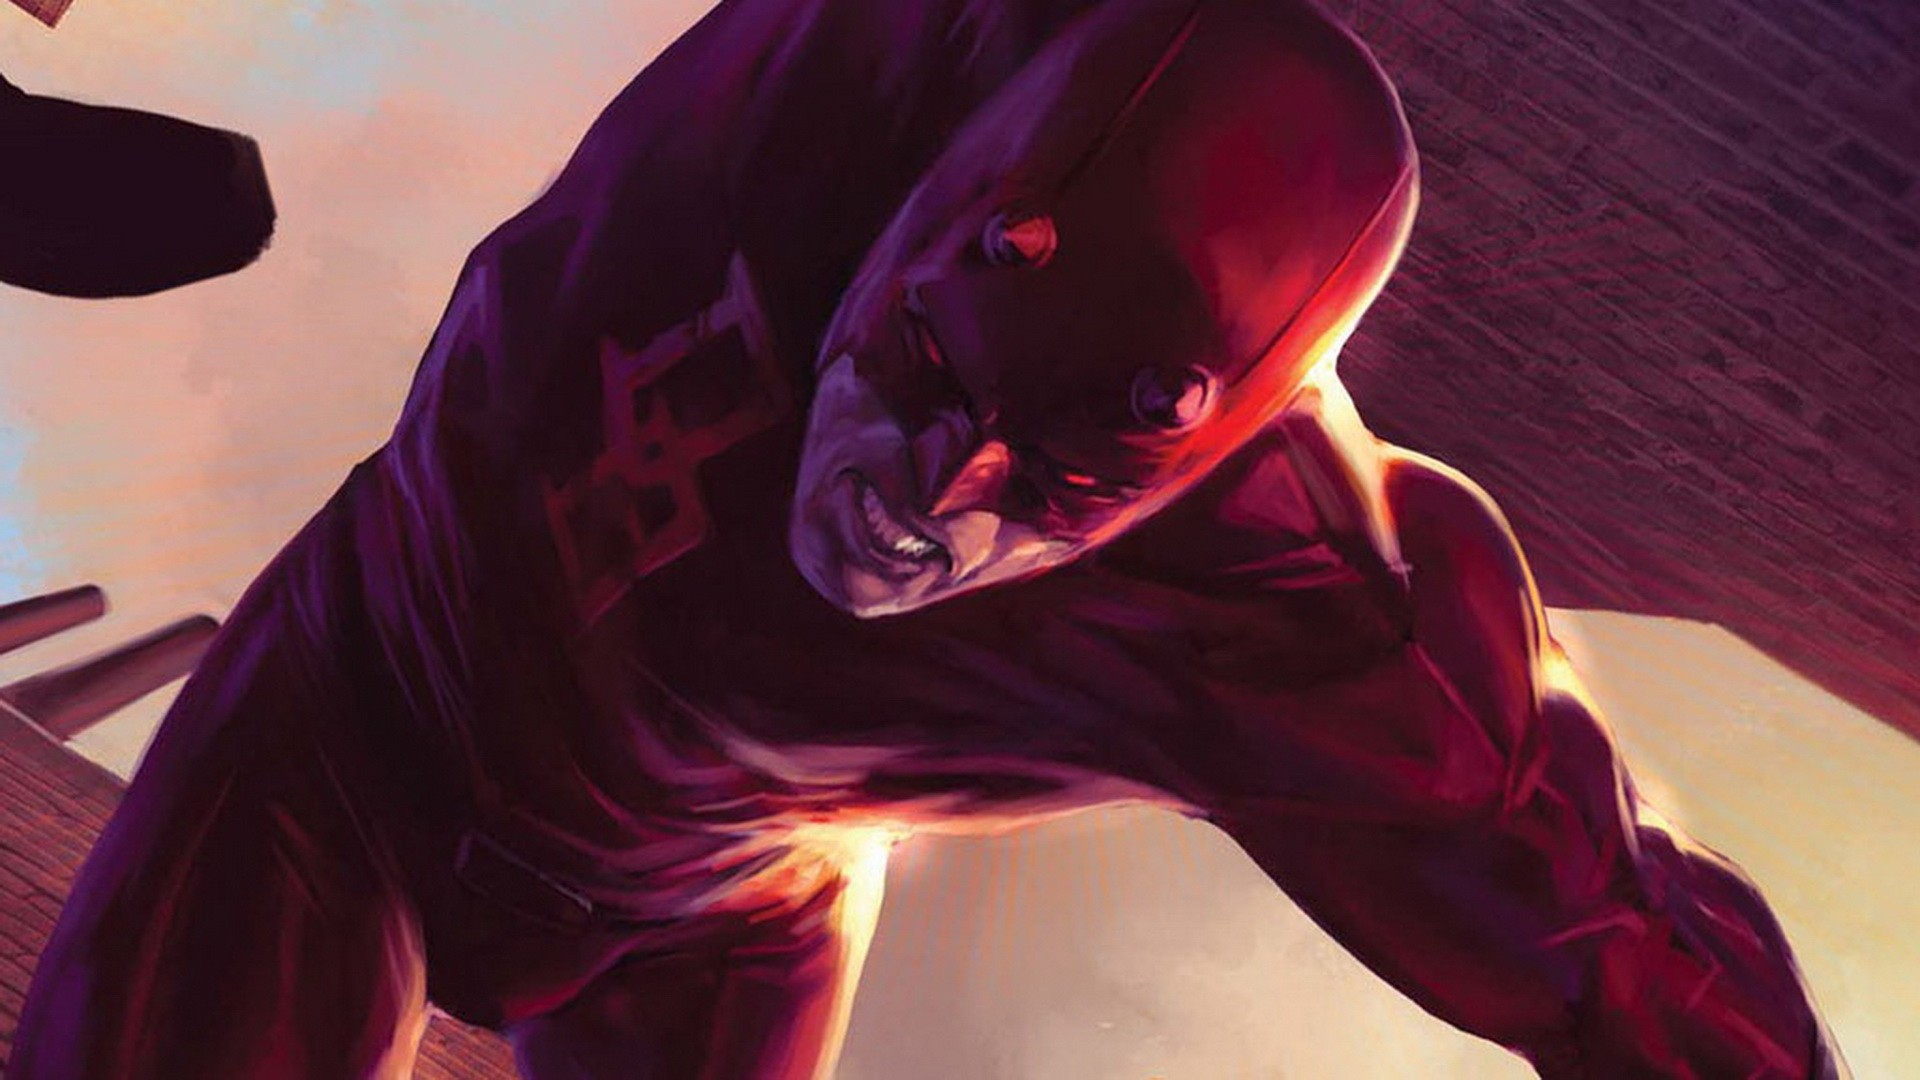 daredevil hd wallpapers for desktop download